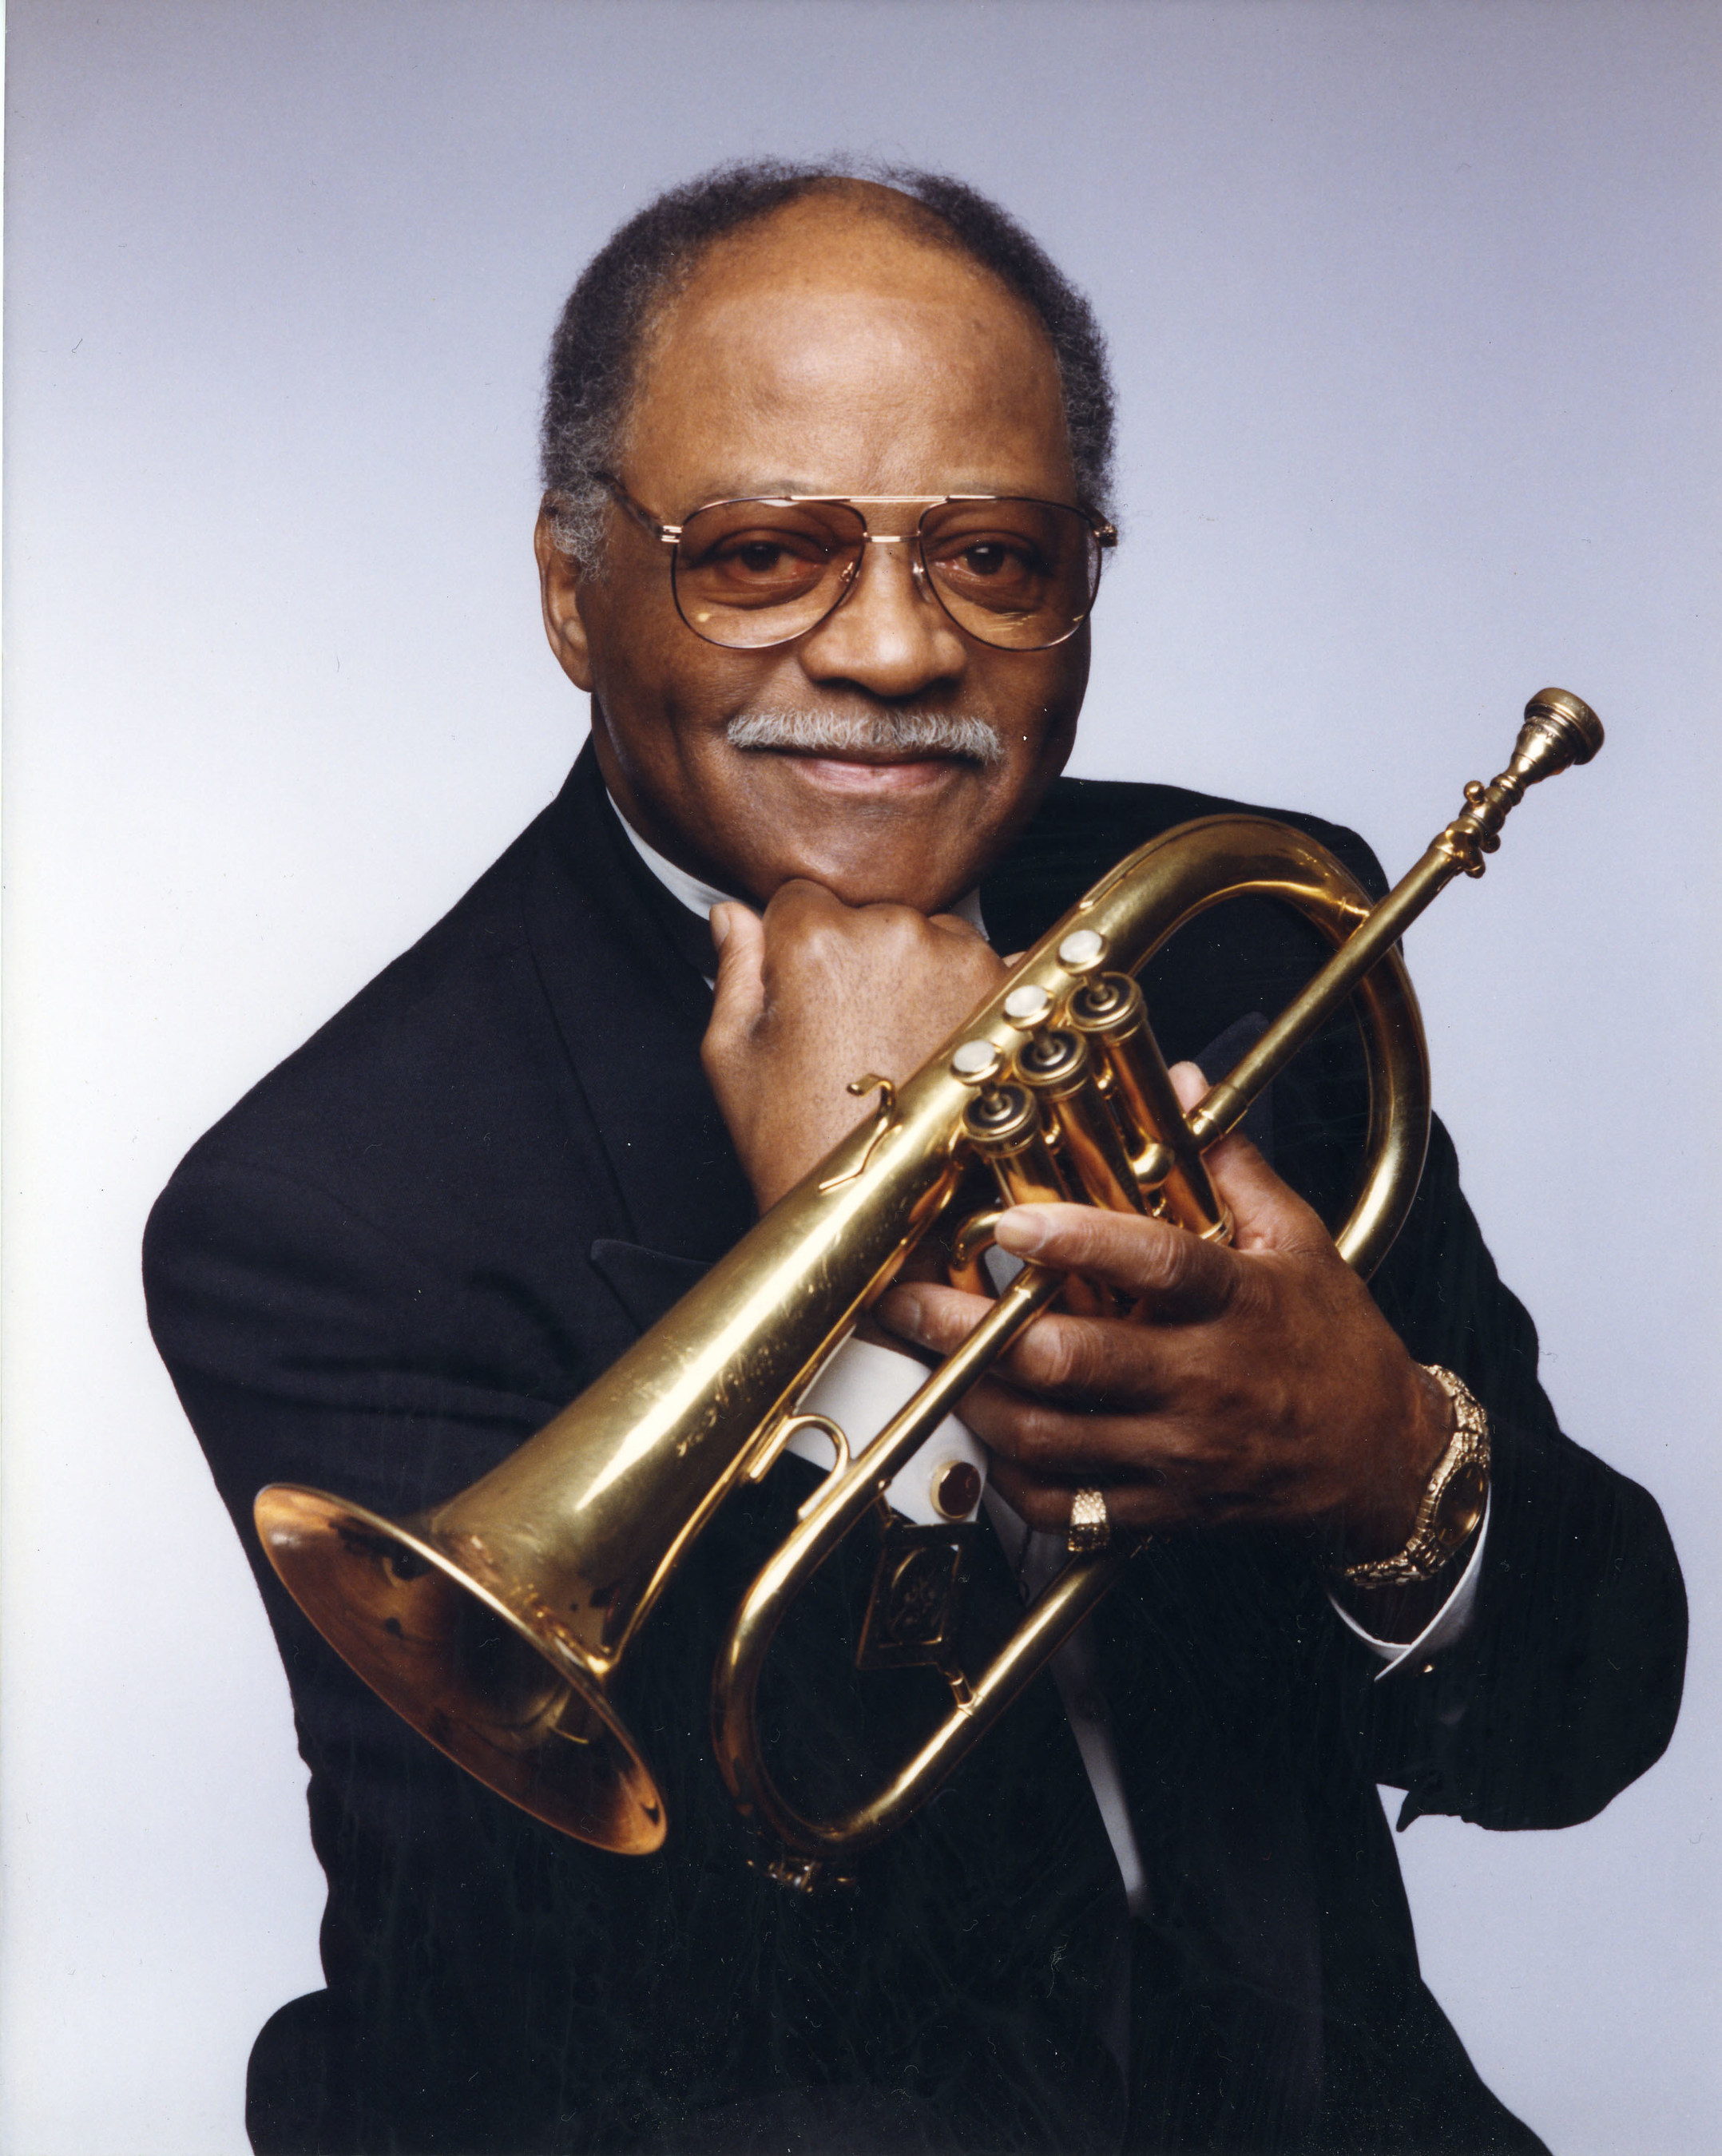 Wynton Marsalis To Headline Tribute To Clark Terry With NJCU Alumni Jazz Big Band